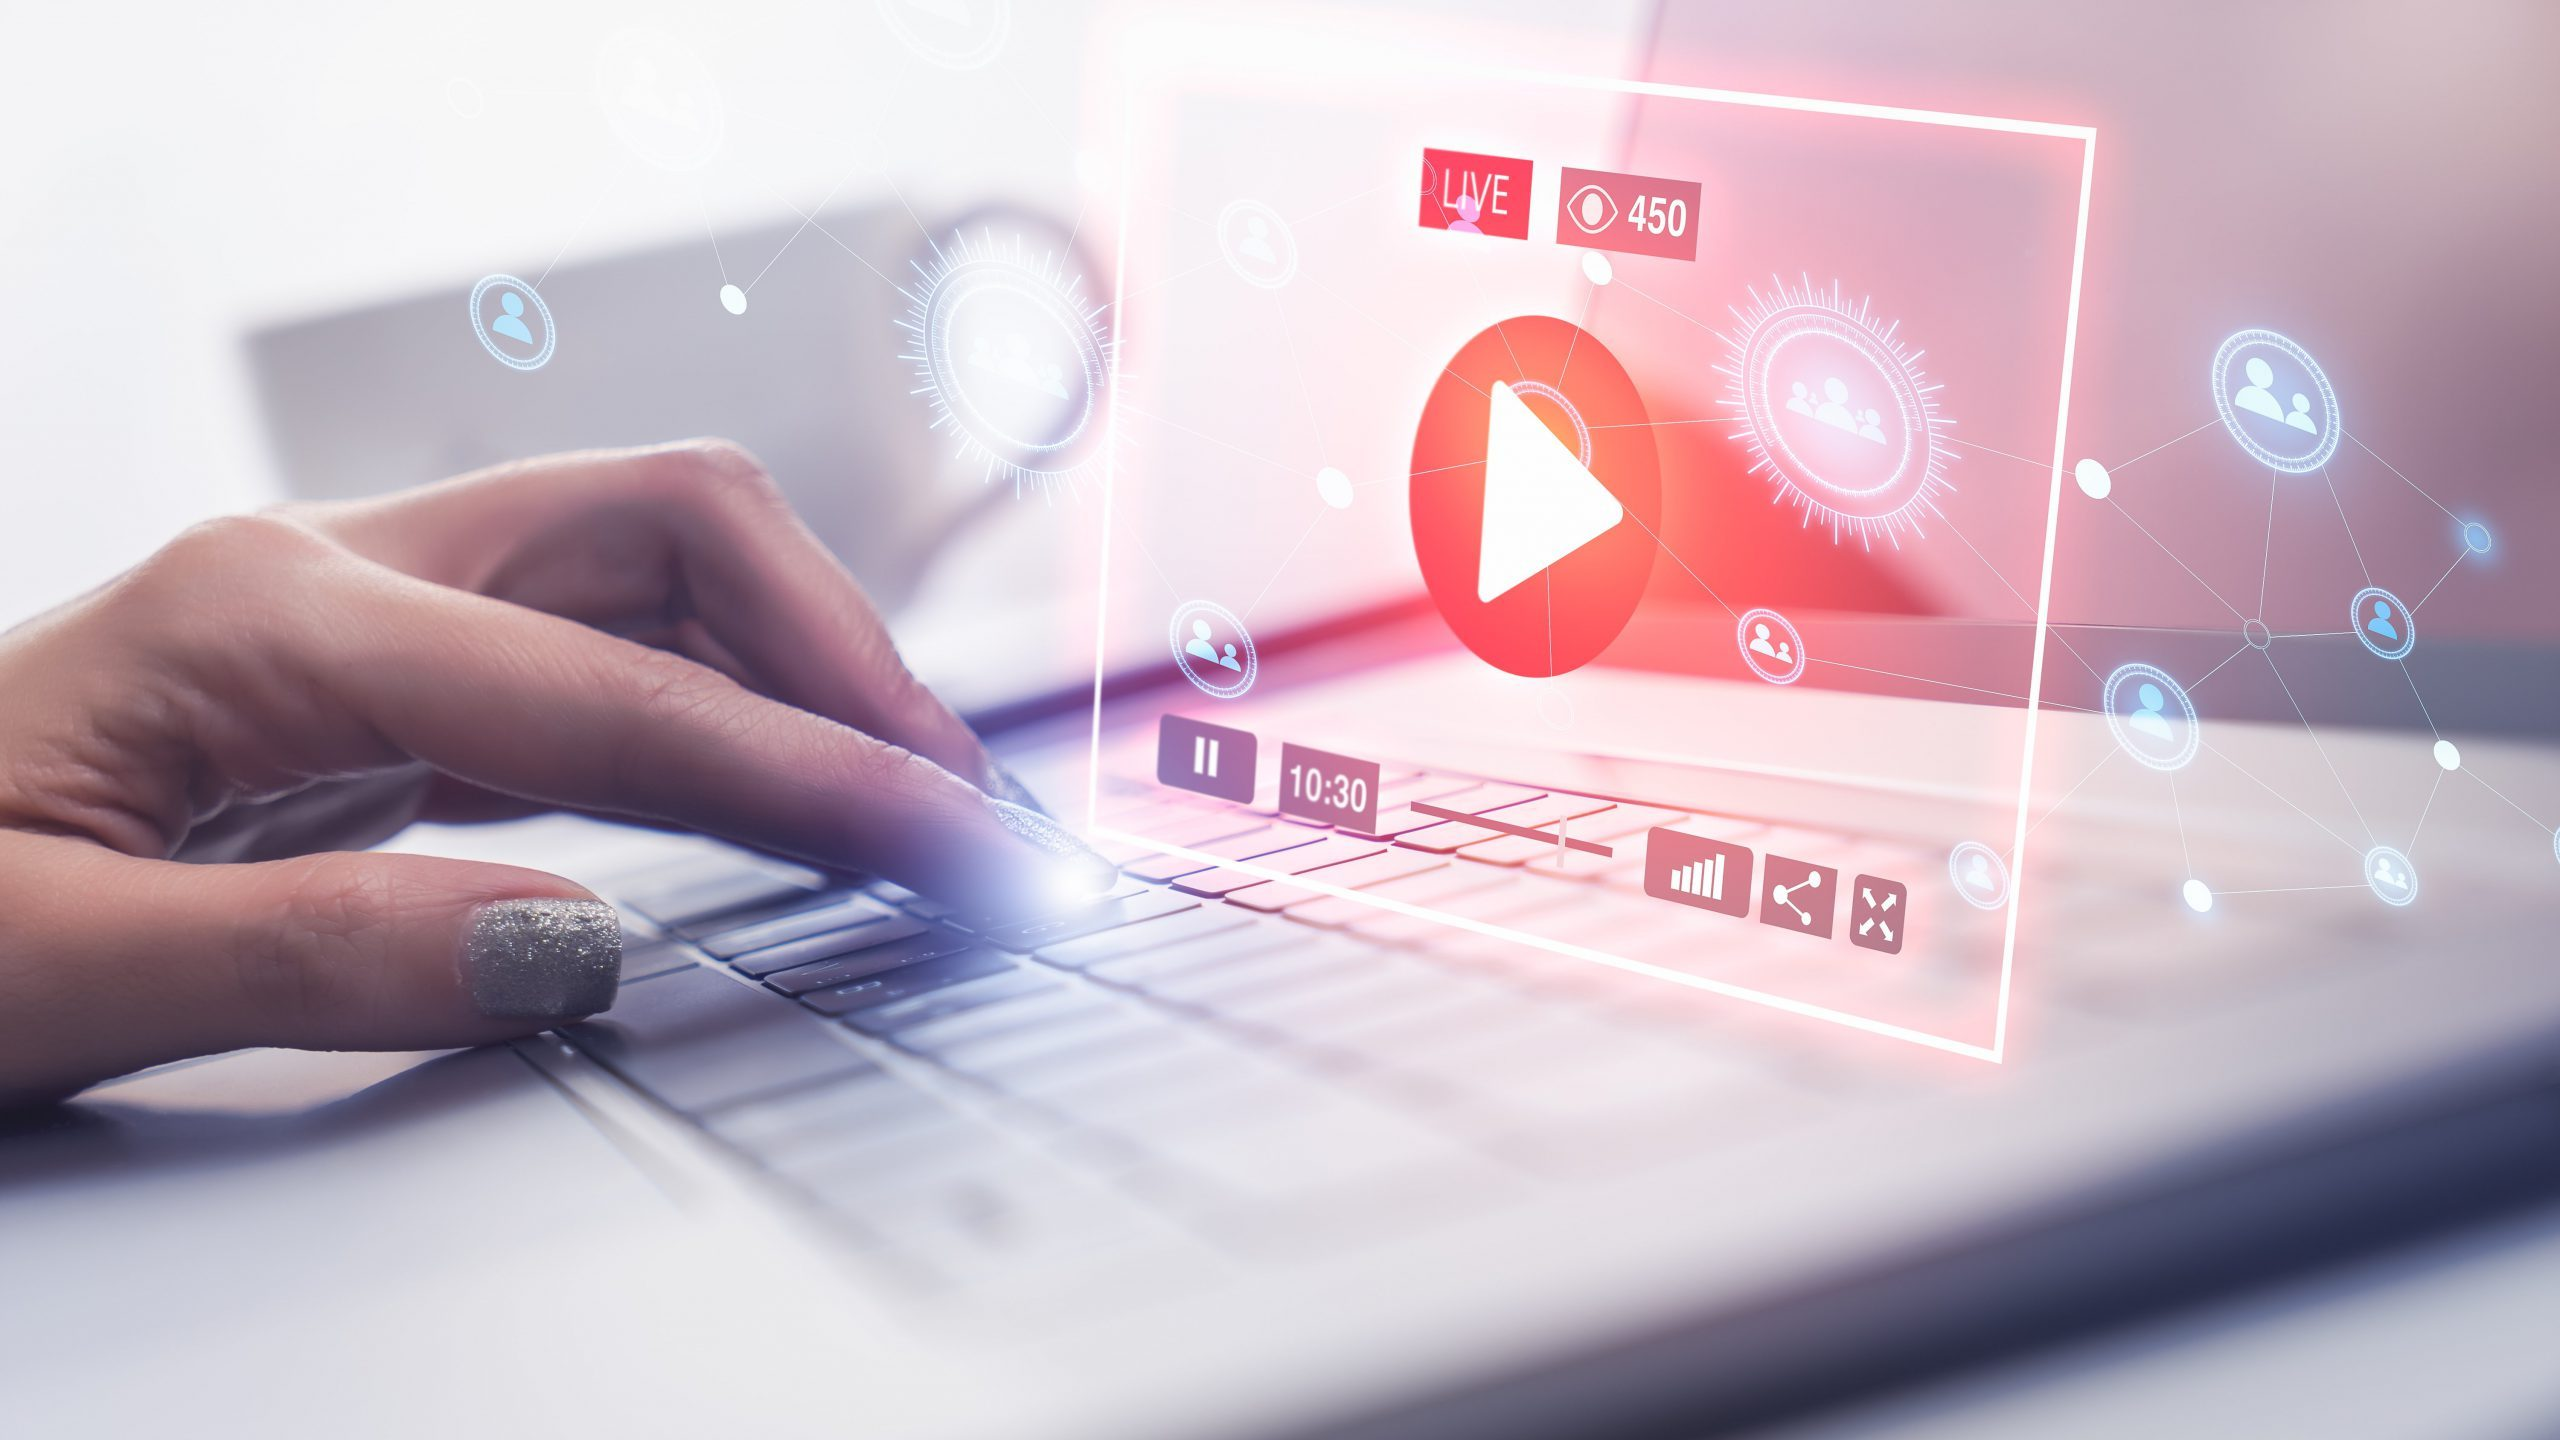 B2B Has Officially Gone Live: Live Video is the Marketer's Go-To Answer